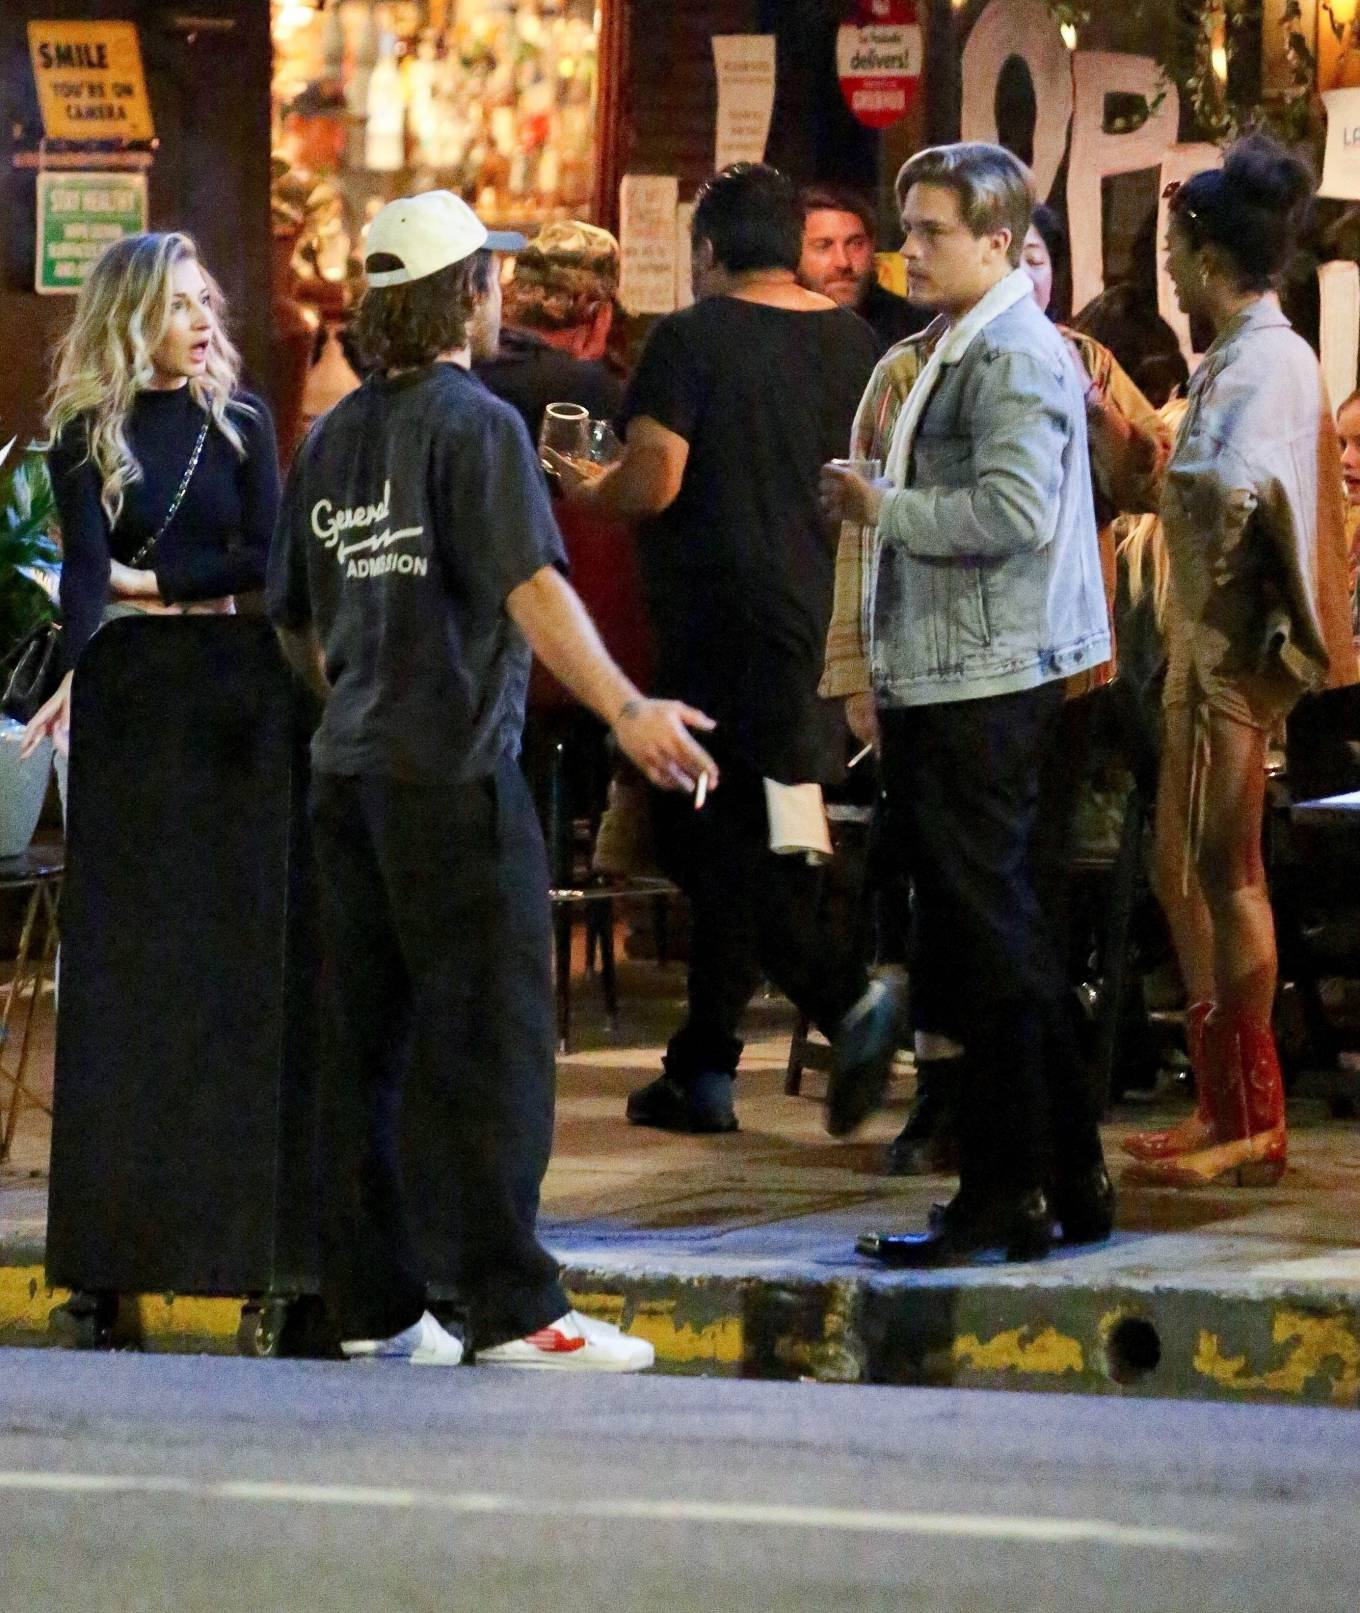 Barbara Palvin 2020 : Dylan Sprouse and Barbara Palvin with KJ Apa and Stella Maxwell – Night out in Silverlake -08